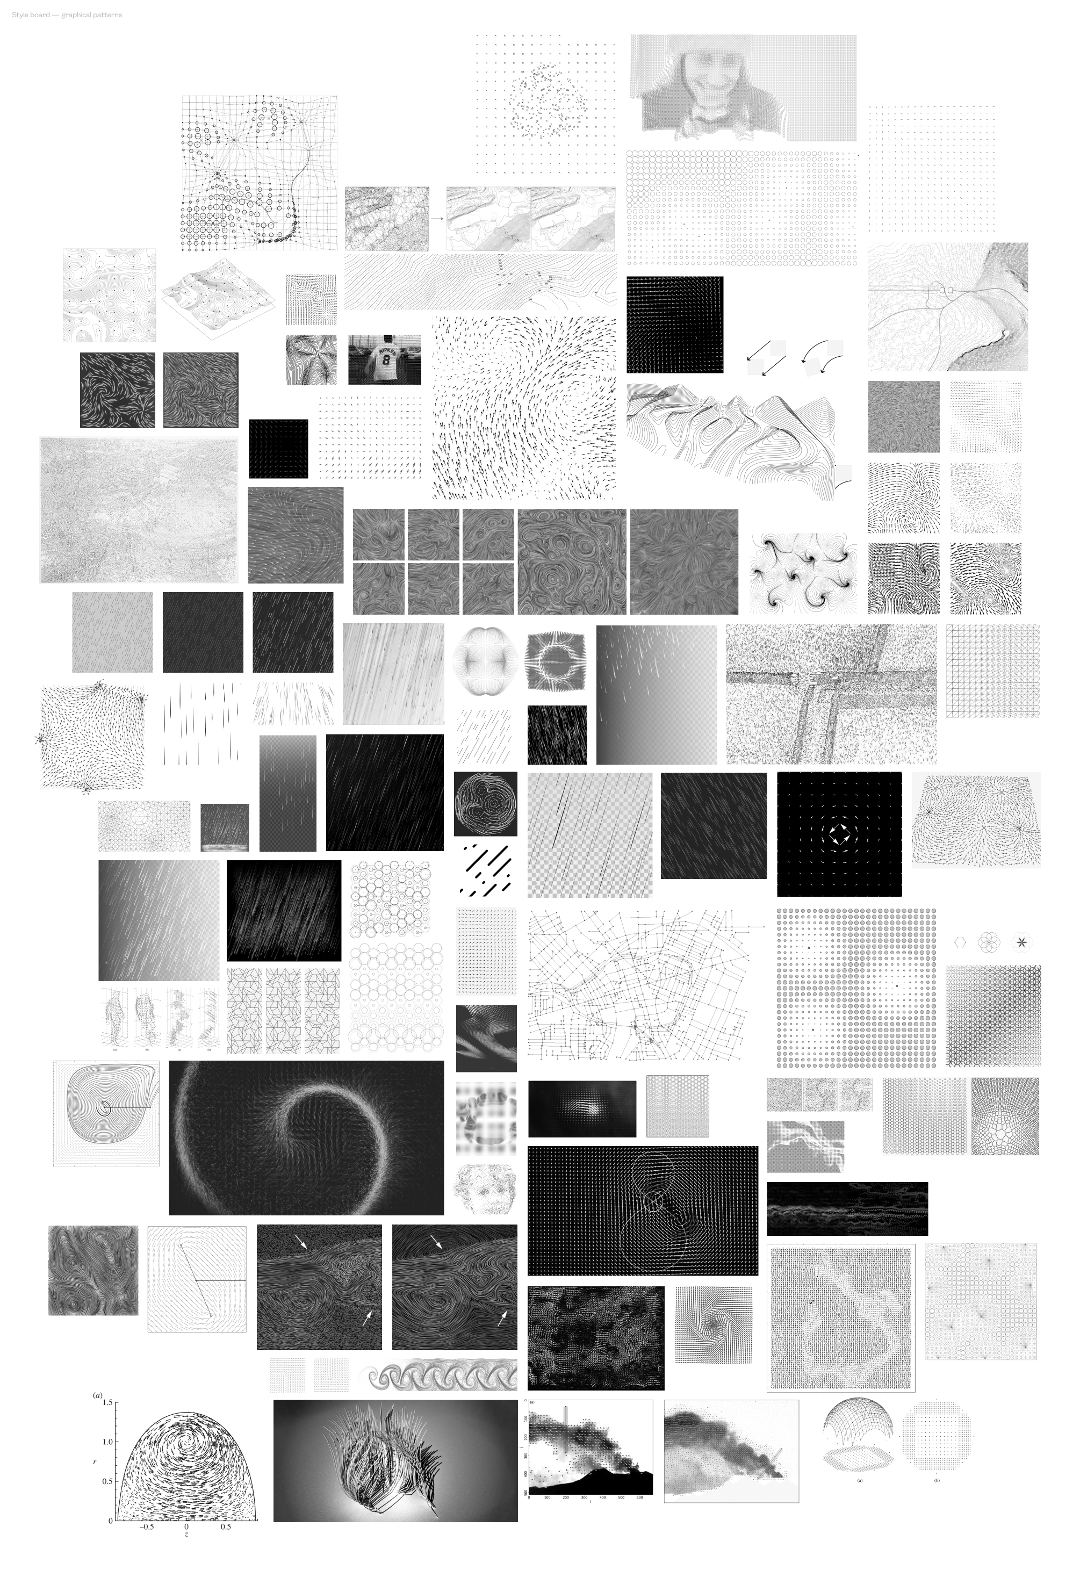 Style board of graphical patterns, December 2015 © David Bihanic